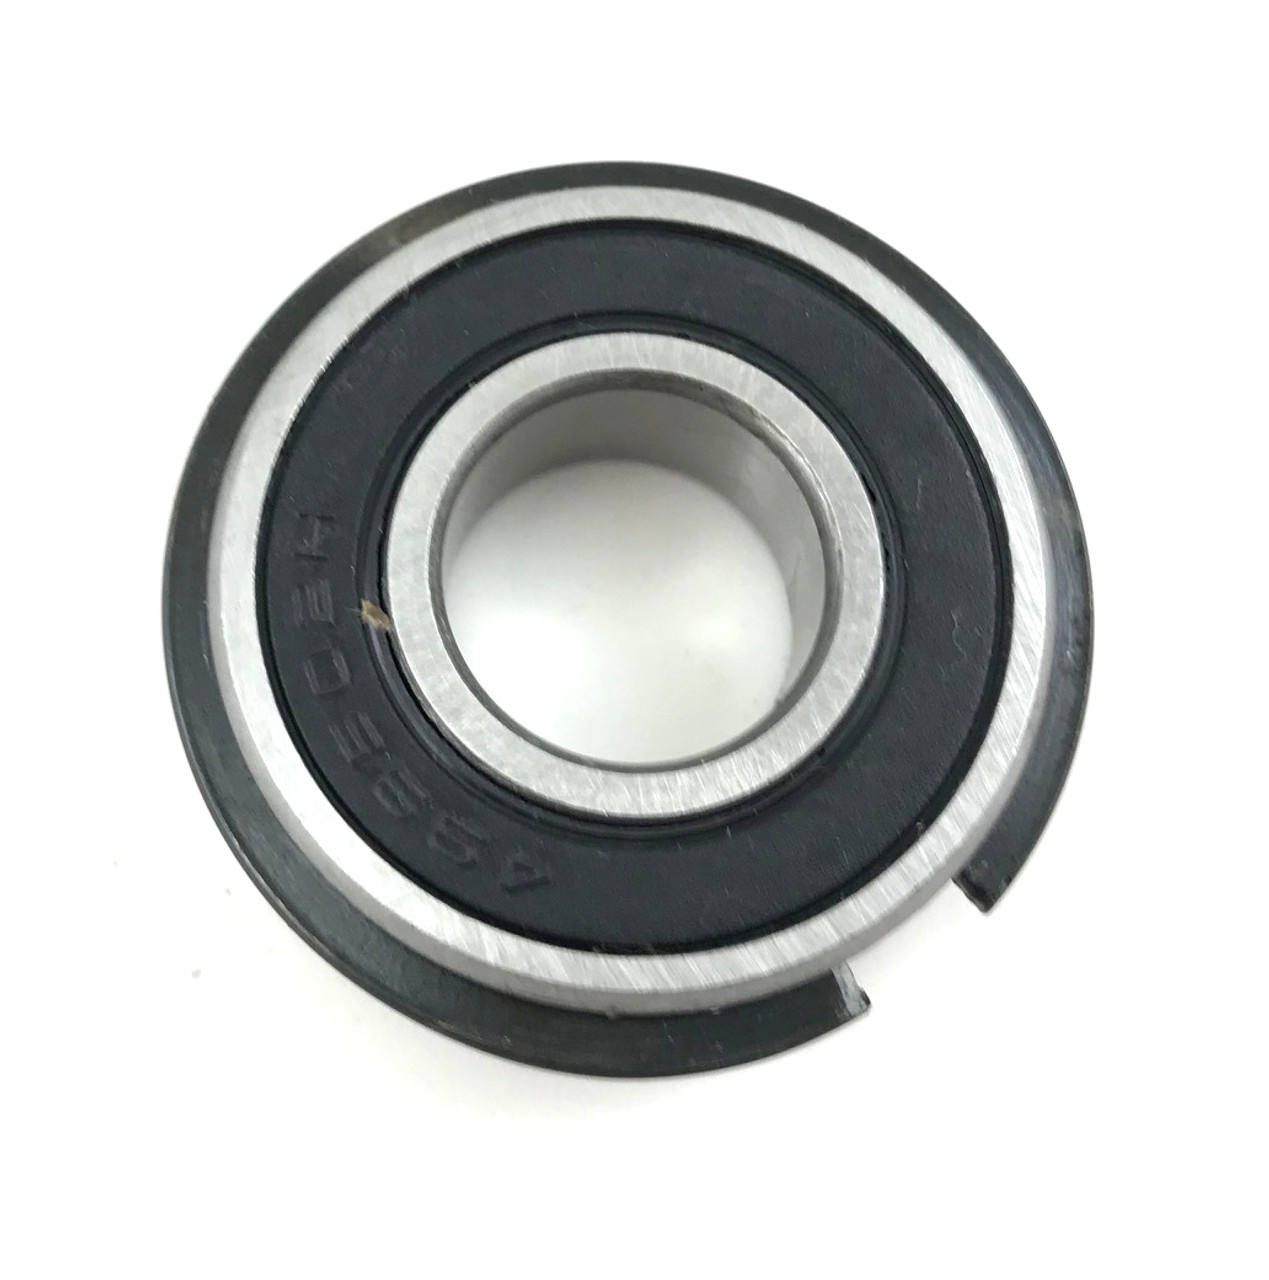 "Mini Bike / Go Kart Snap Ring Wheel Bearing - 5/8"" x 1-3/8"""